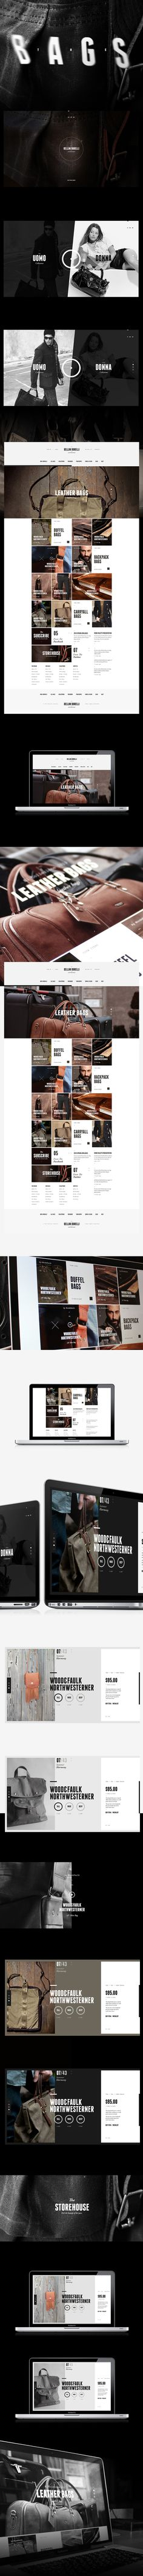 BELLINI BORELLI by Alexey Masalov, via Behance